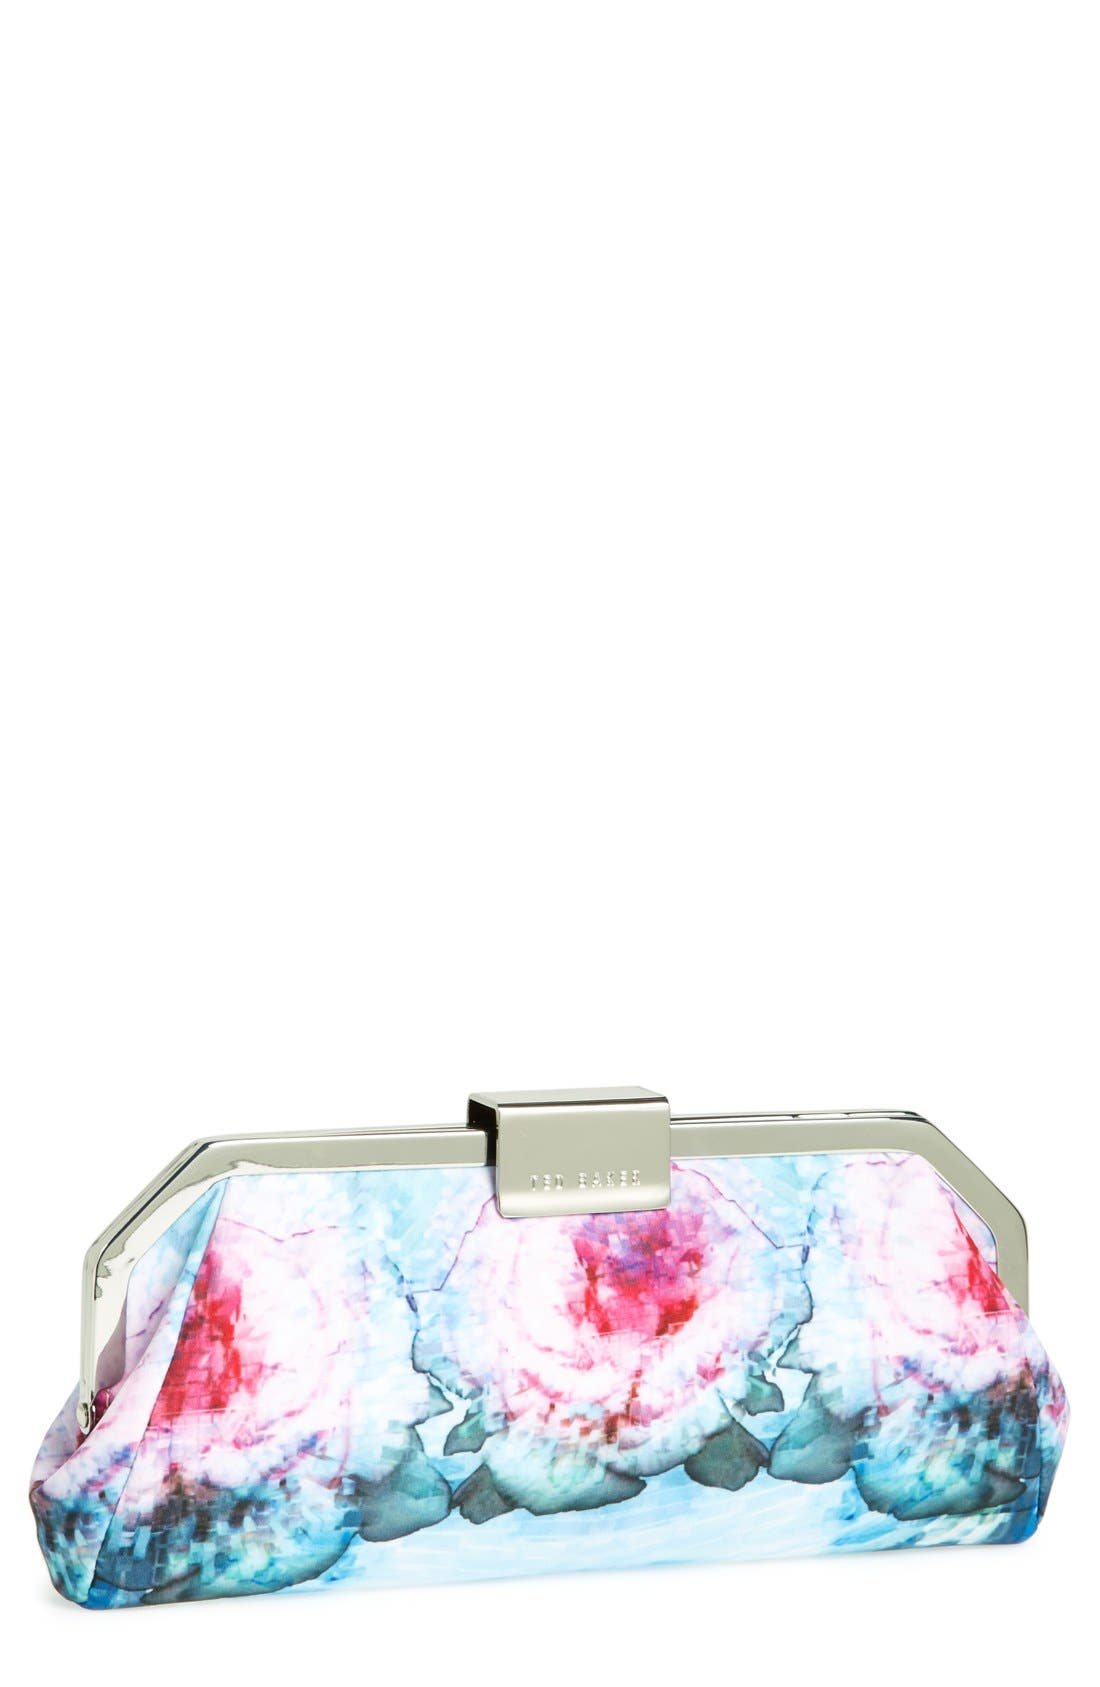 Main Image - Ted Baker London 'Cubist Floral' Clutch